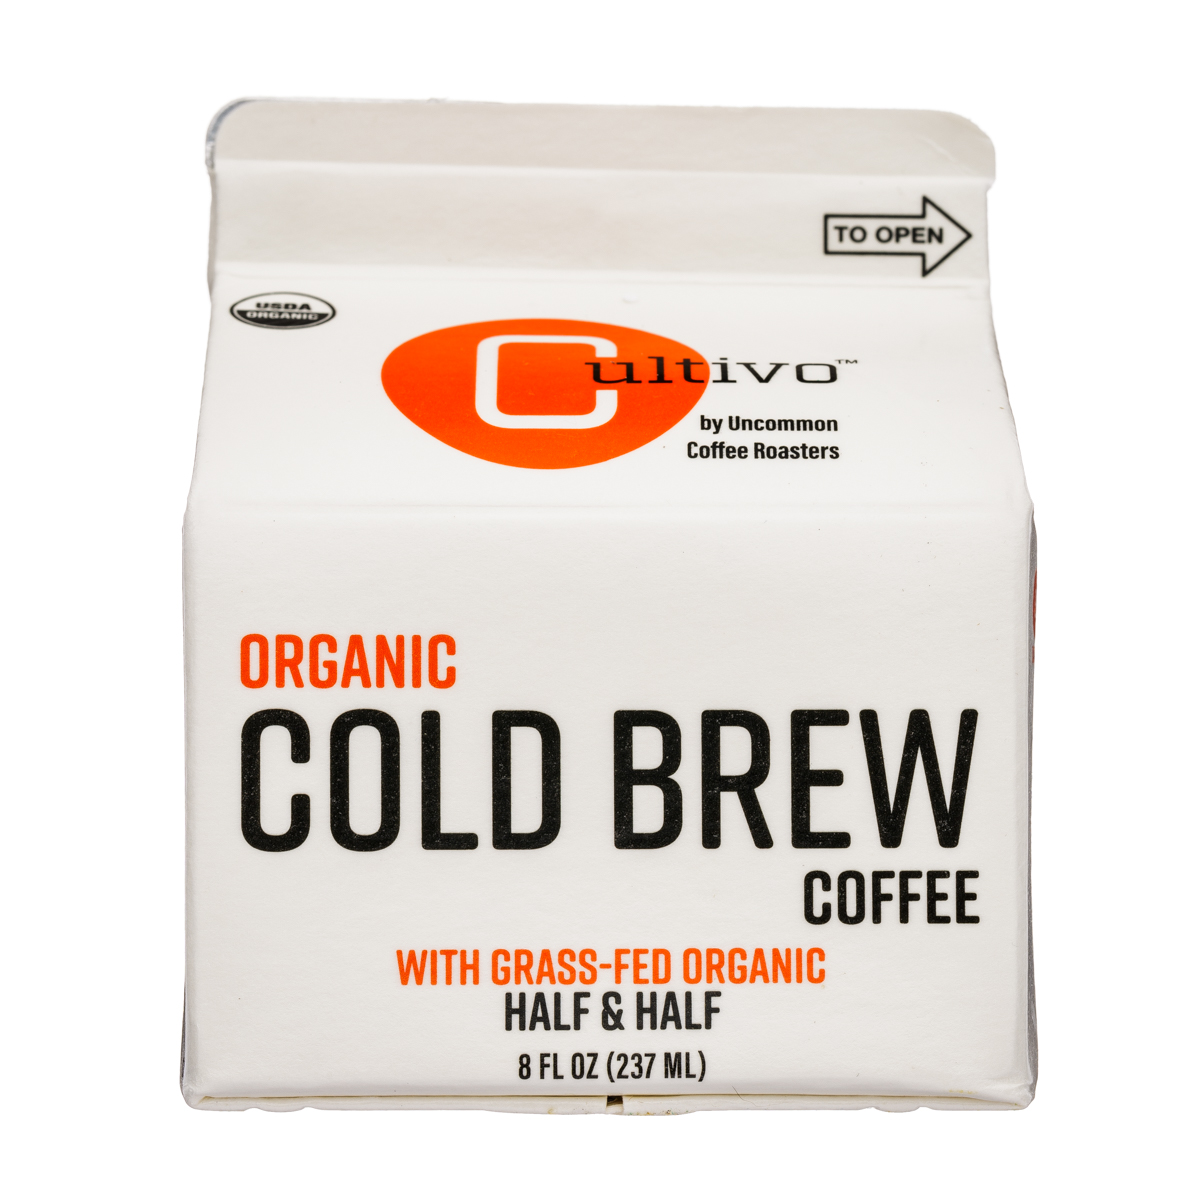 Organic Cold Brew Coffee - Half & Half